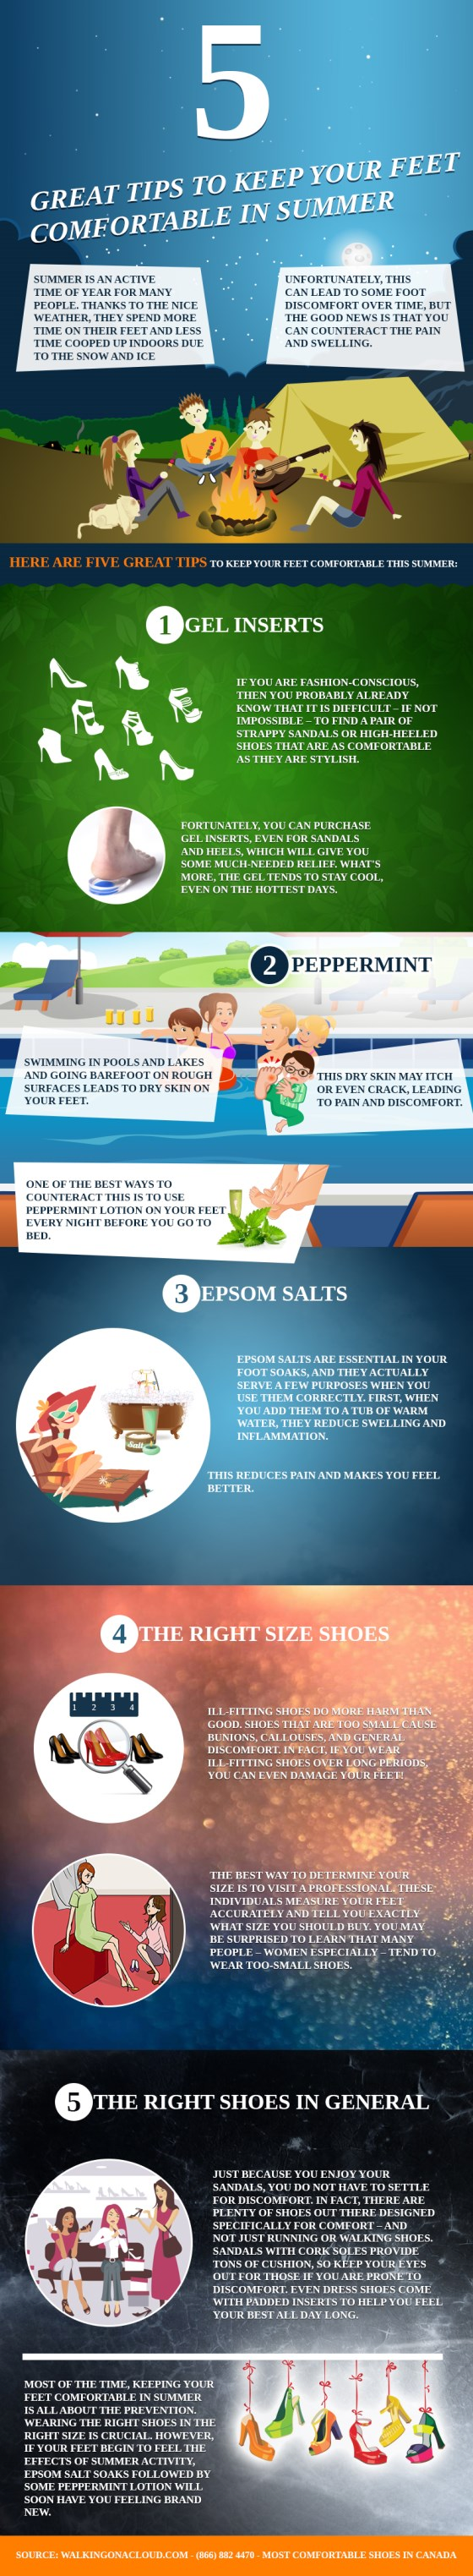 5-Great-Tips-to-Keep-Your-Feet-Comfortable-in-Summer-Edited